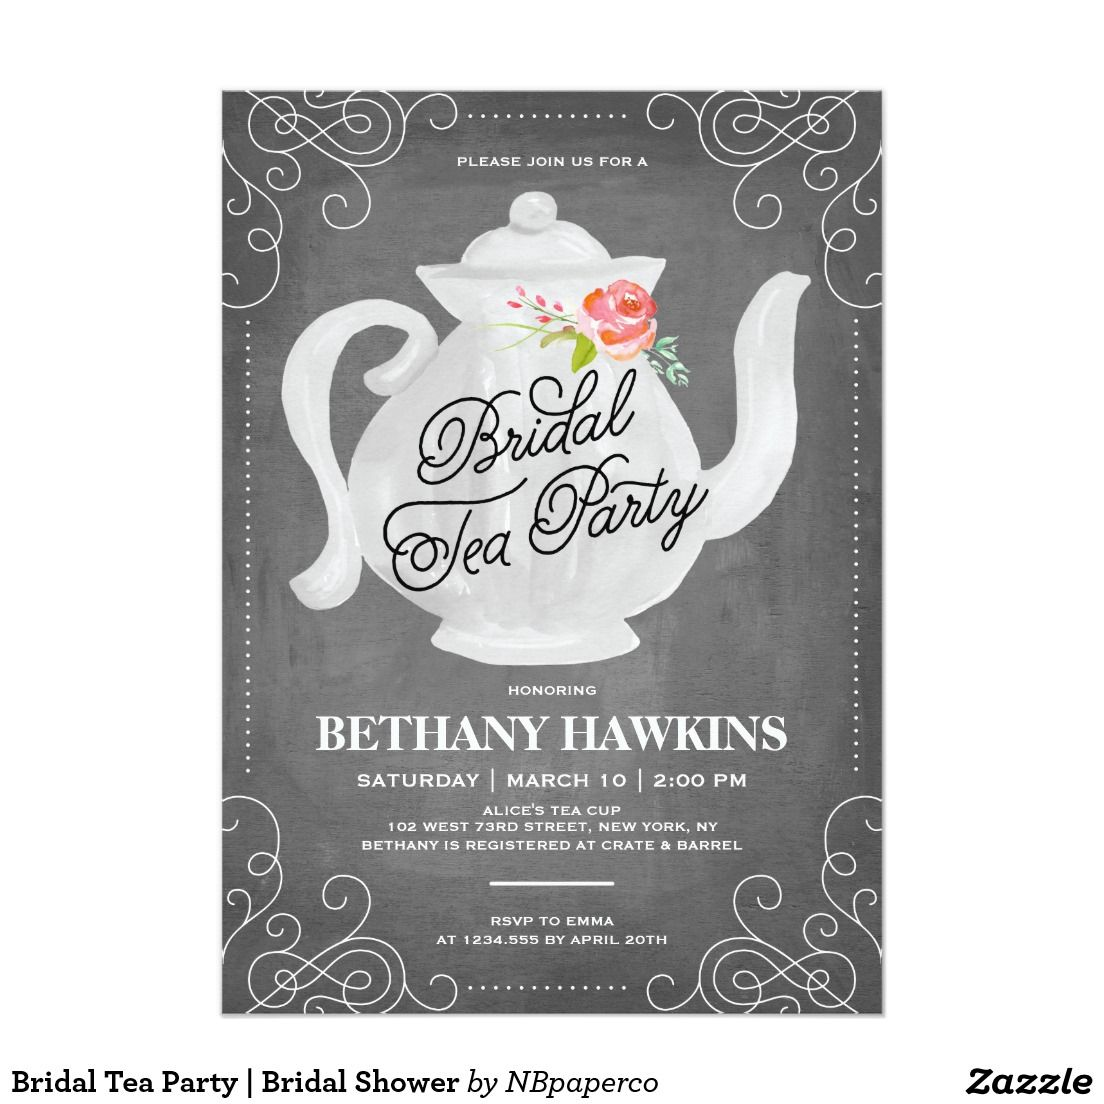 Bridal tea party bridal shower card elegant chalkboard bridal bridal tea party bridal shower card elegant chalkboard bridal shower invitation templates classy filmwisefo Images